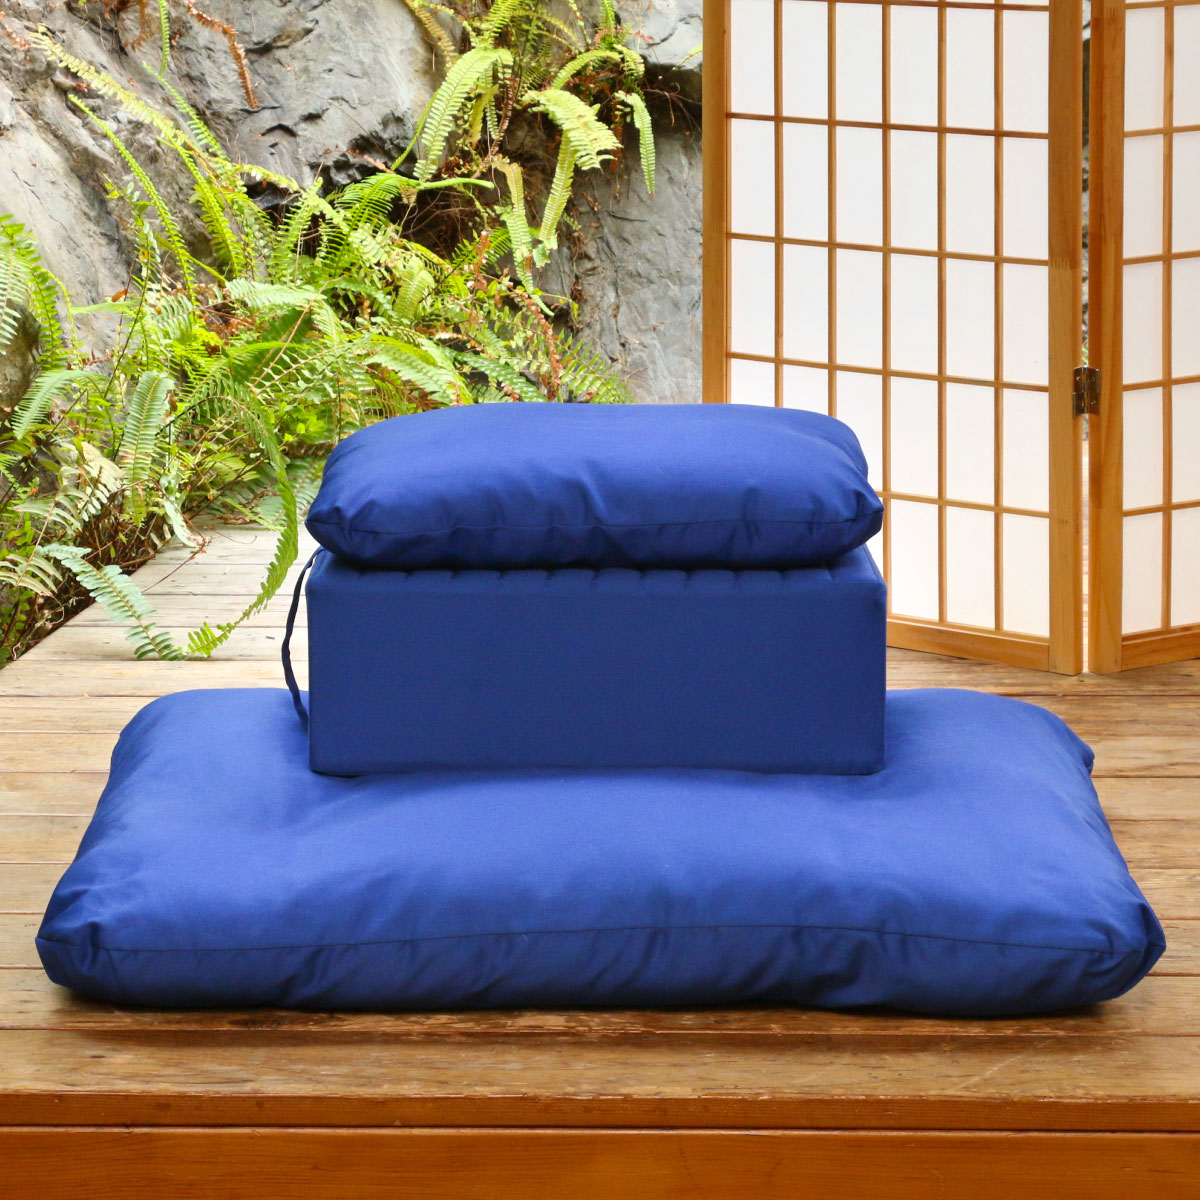 Select a Gomden Meditation Cushion Set with Gomden Support Pillow in Royal Blue